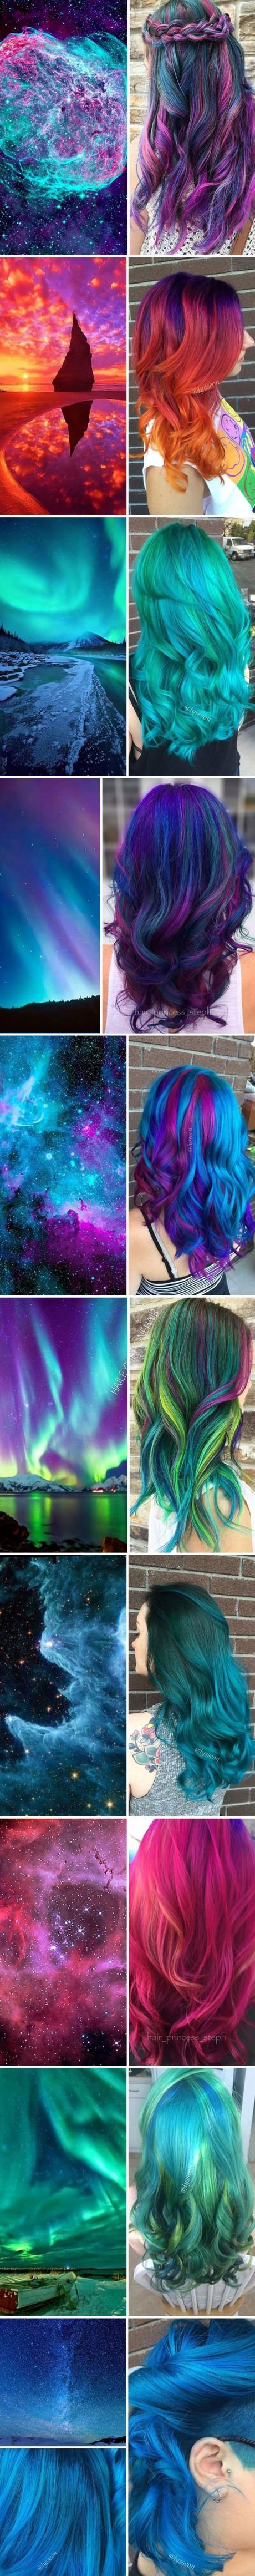 "This ""Galaxy Hair"" trend is actually quite mesmerizing"